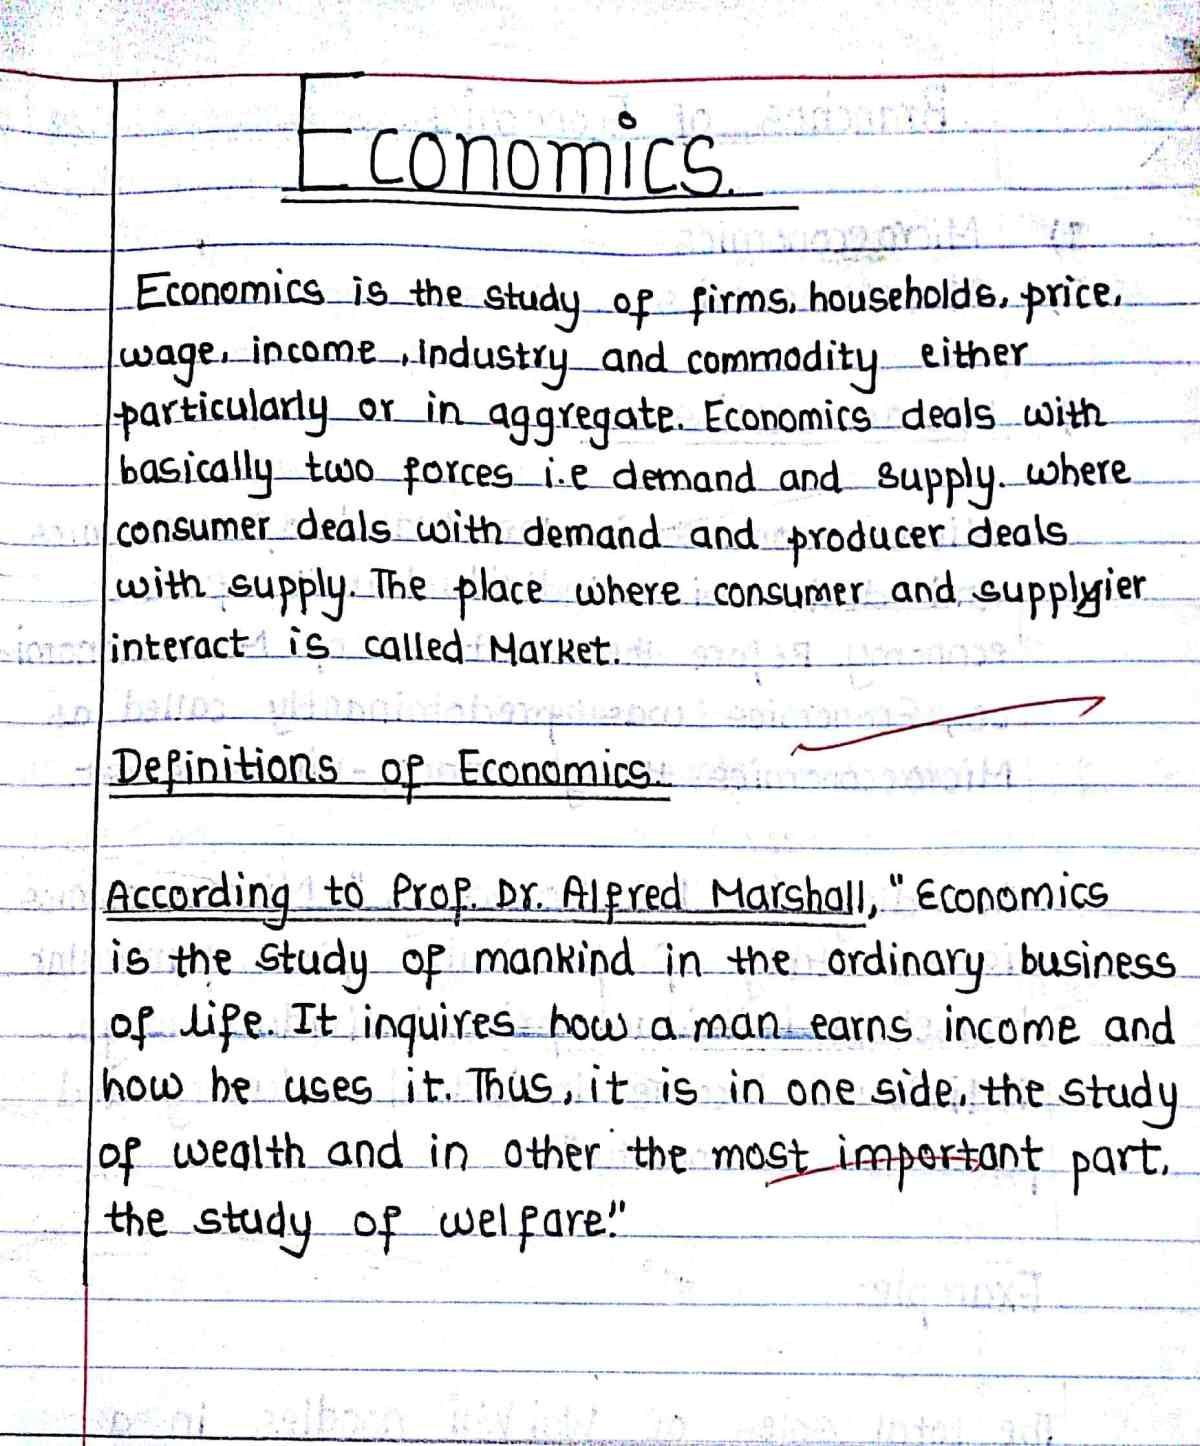 Microeconomics Meaning Types And Uses Study Deeper Economics Notes Economics Lessons Social Studies Notebook